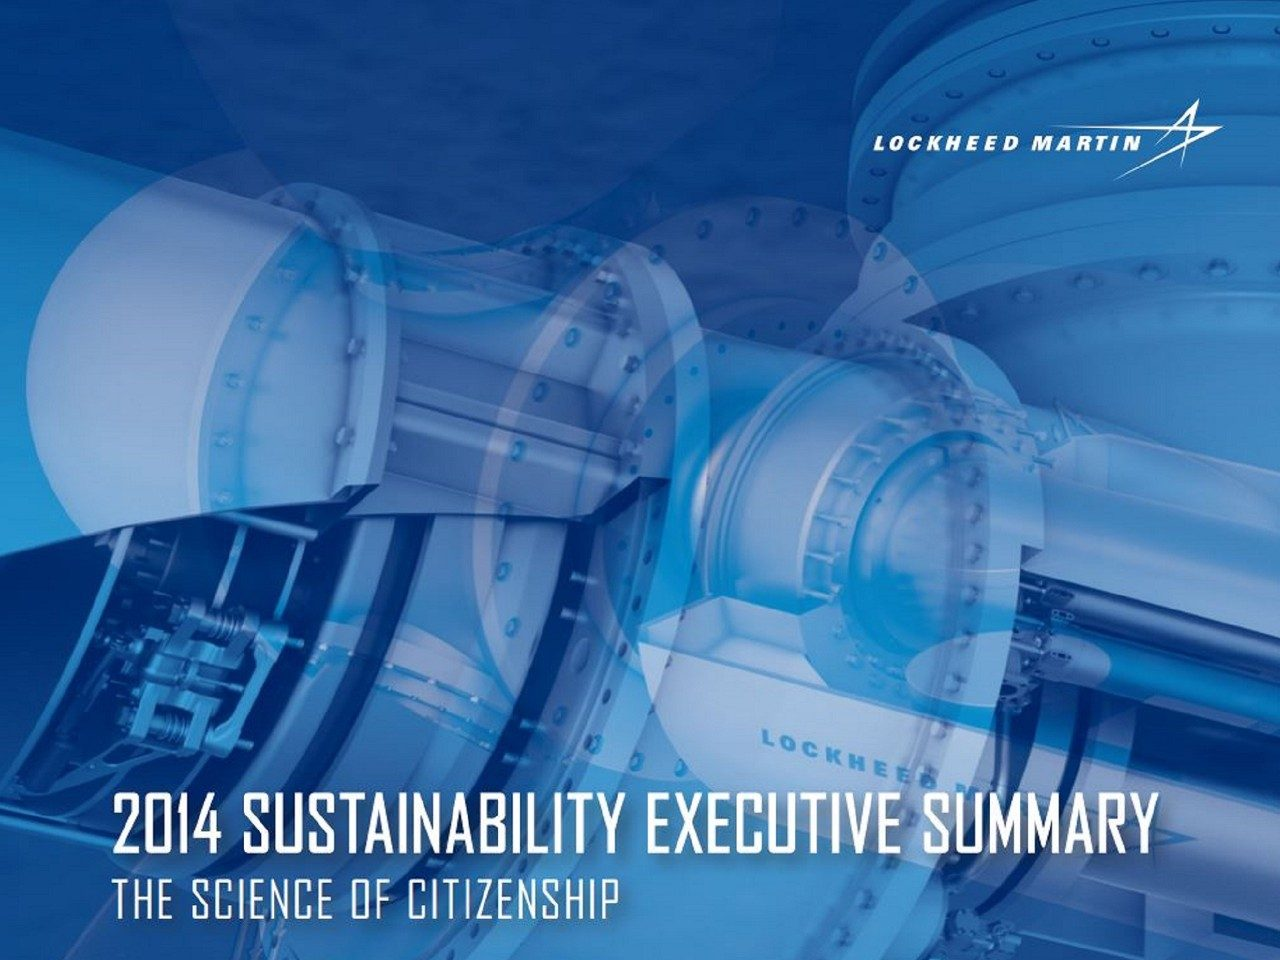 2014 Sustainability Executive Summary